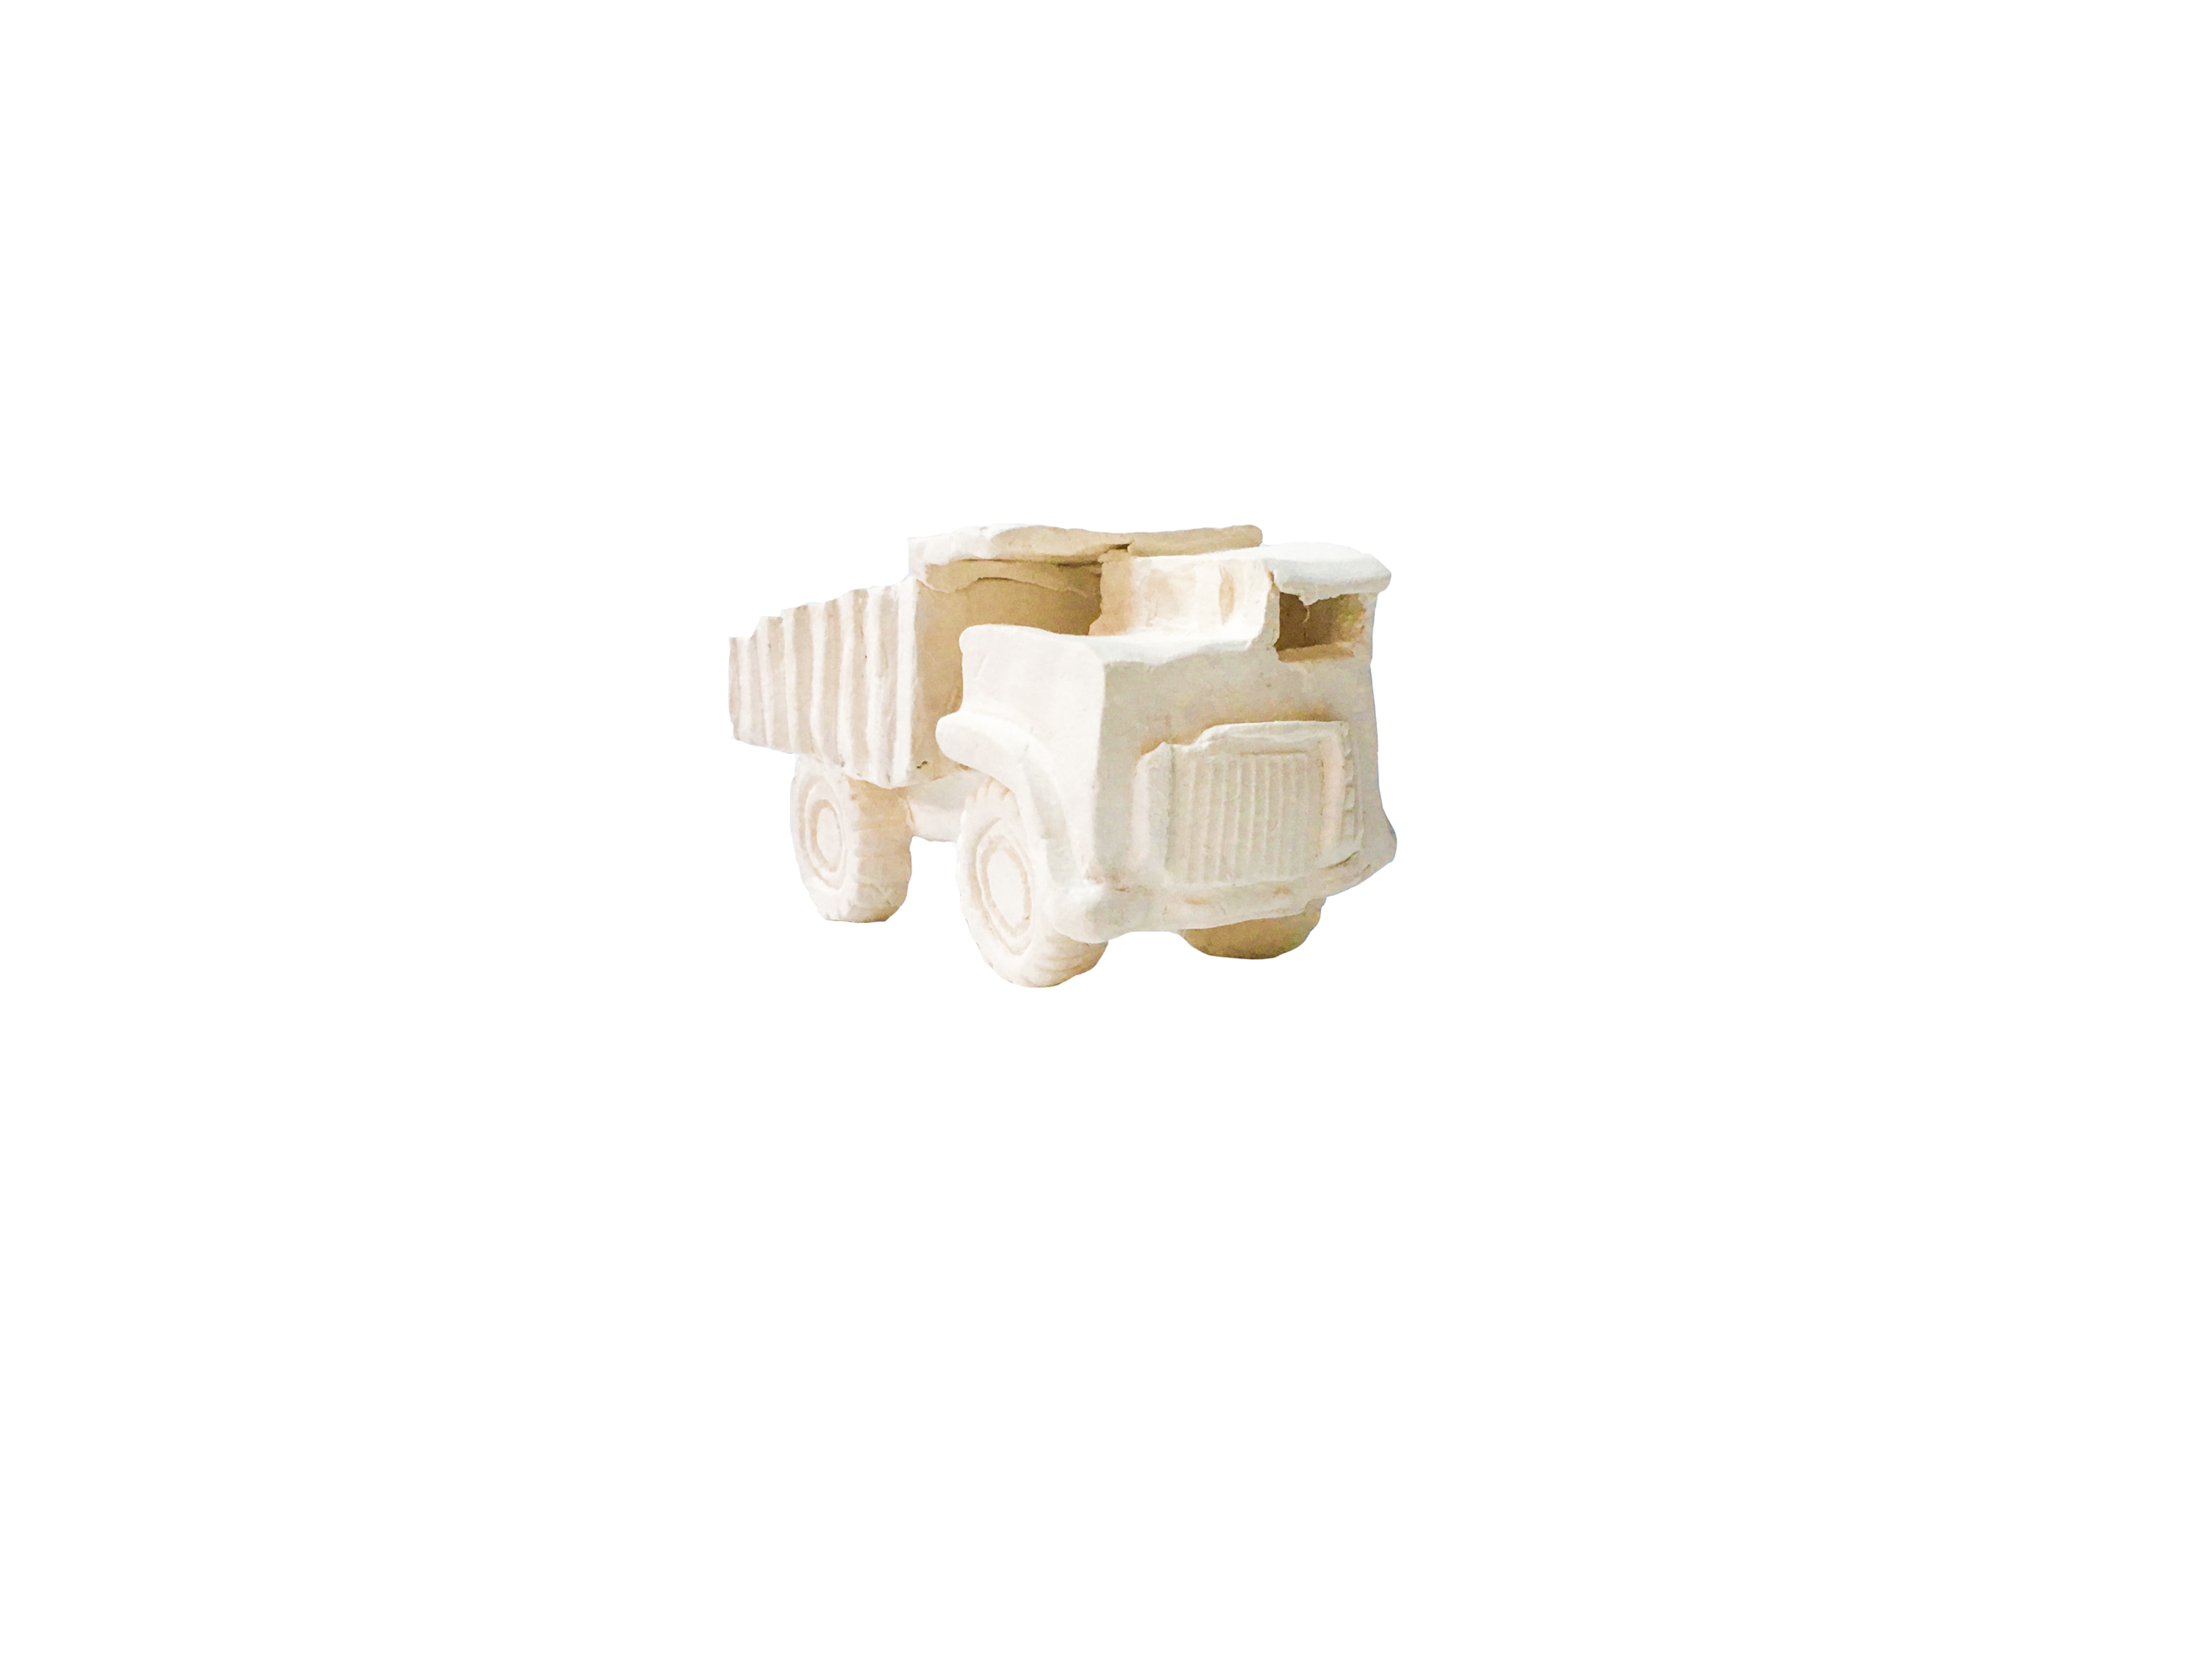 toy truck_Forward Union_12_2_17_3.png